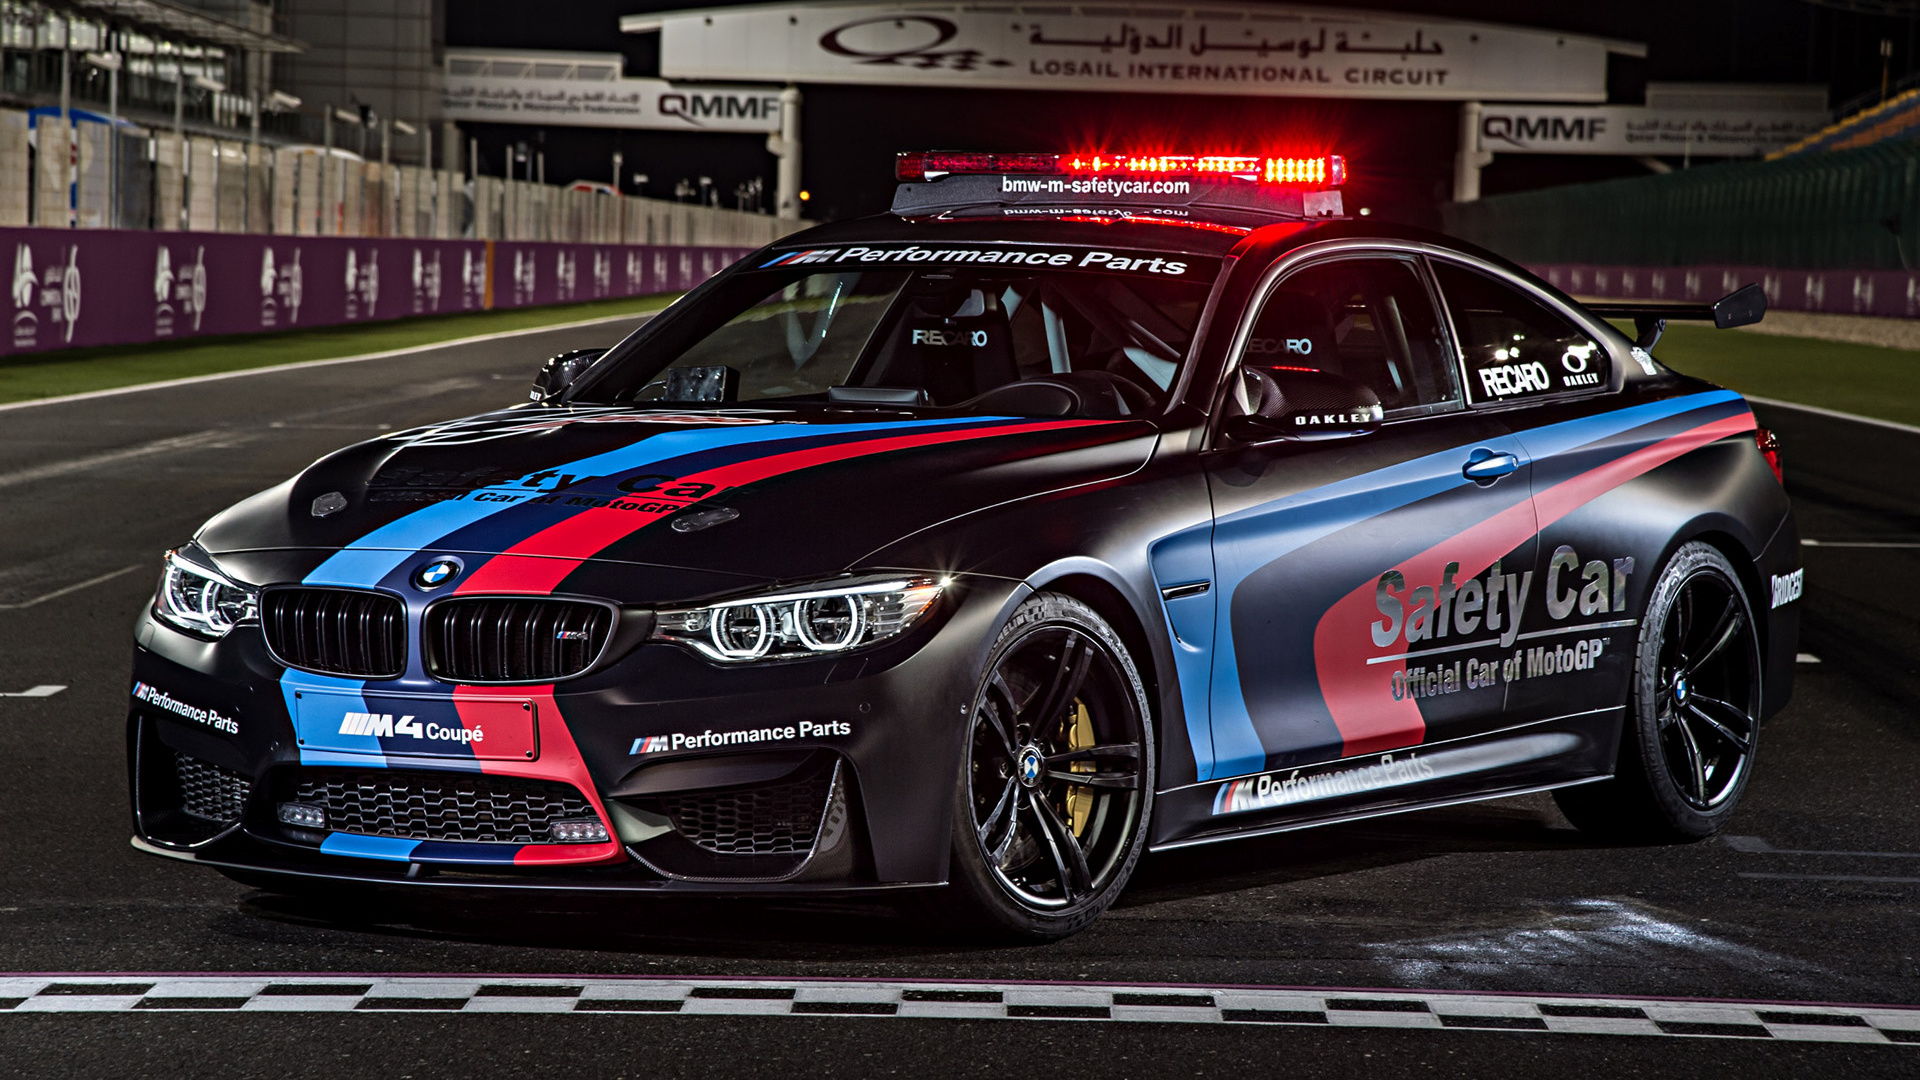 2015 Bmw M4 Motogp Safety Car Wallpapers Hd Wallpapers  2017  2018